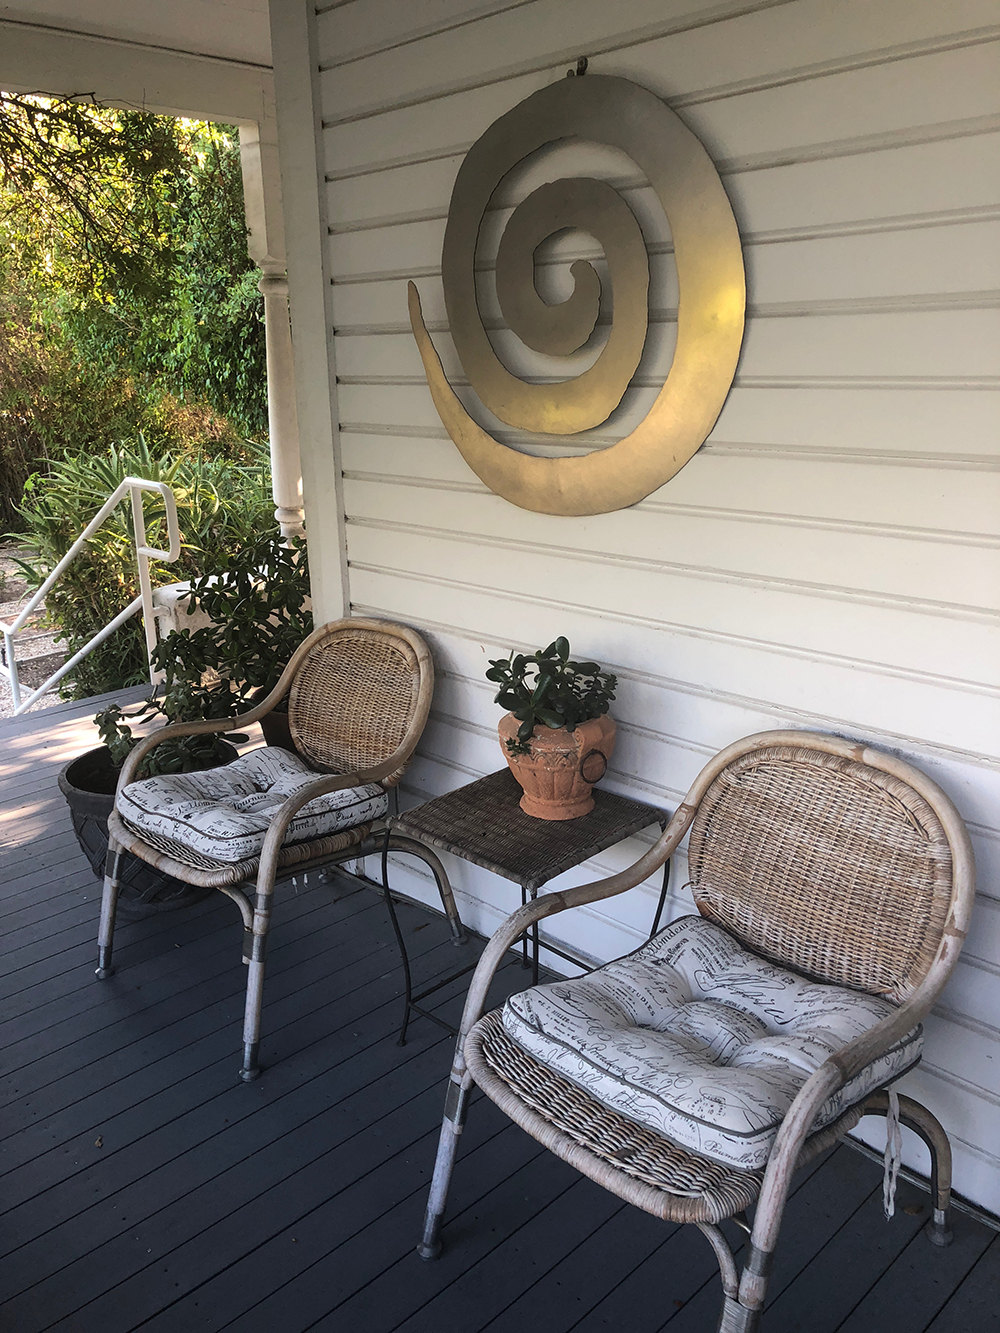 The wide, wrap-around porch offers additional comfortable seating for guests.